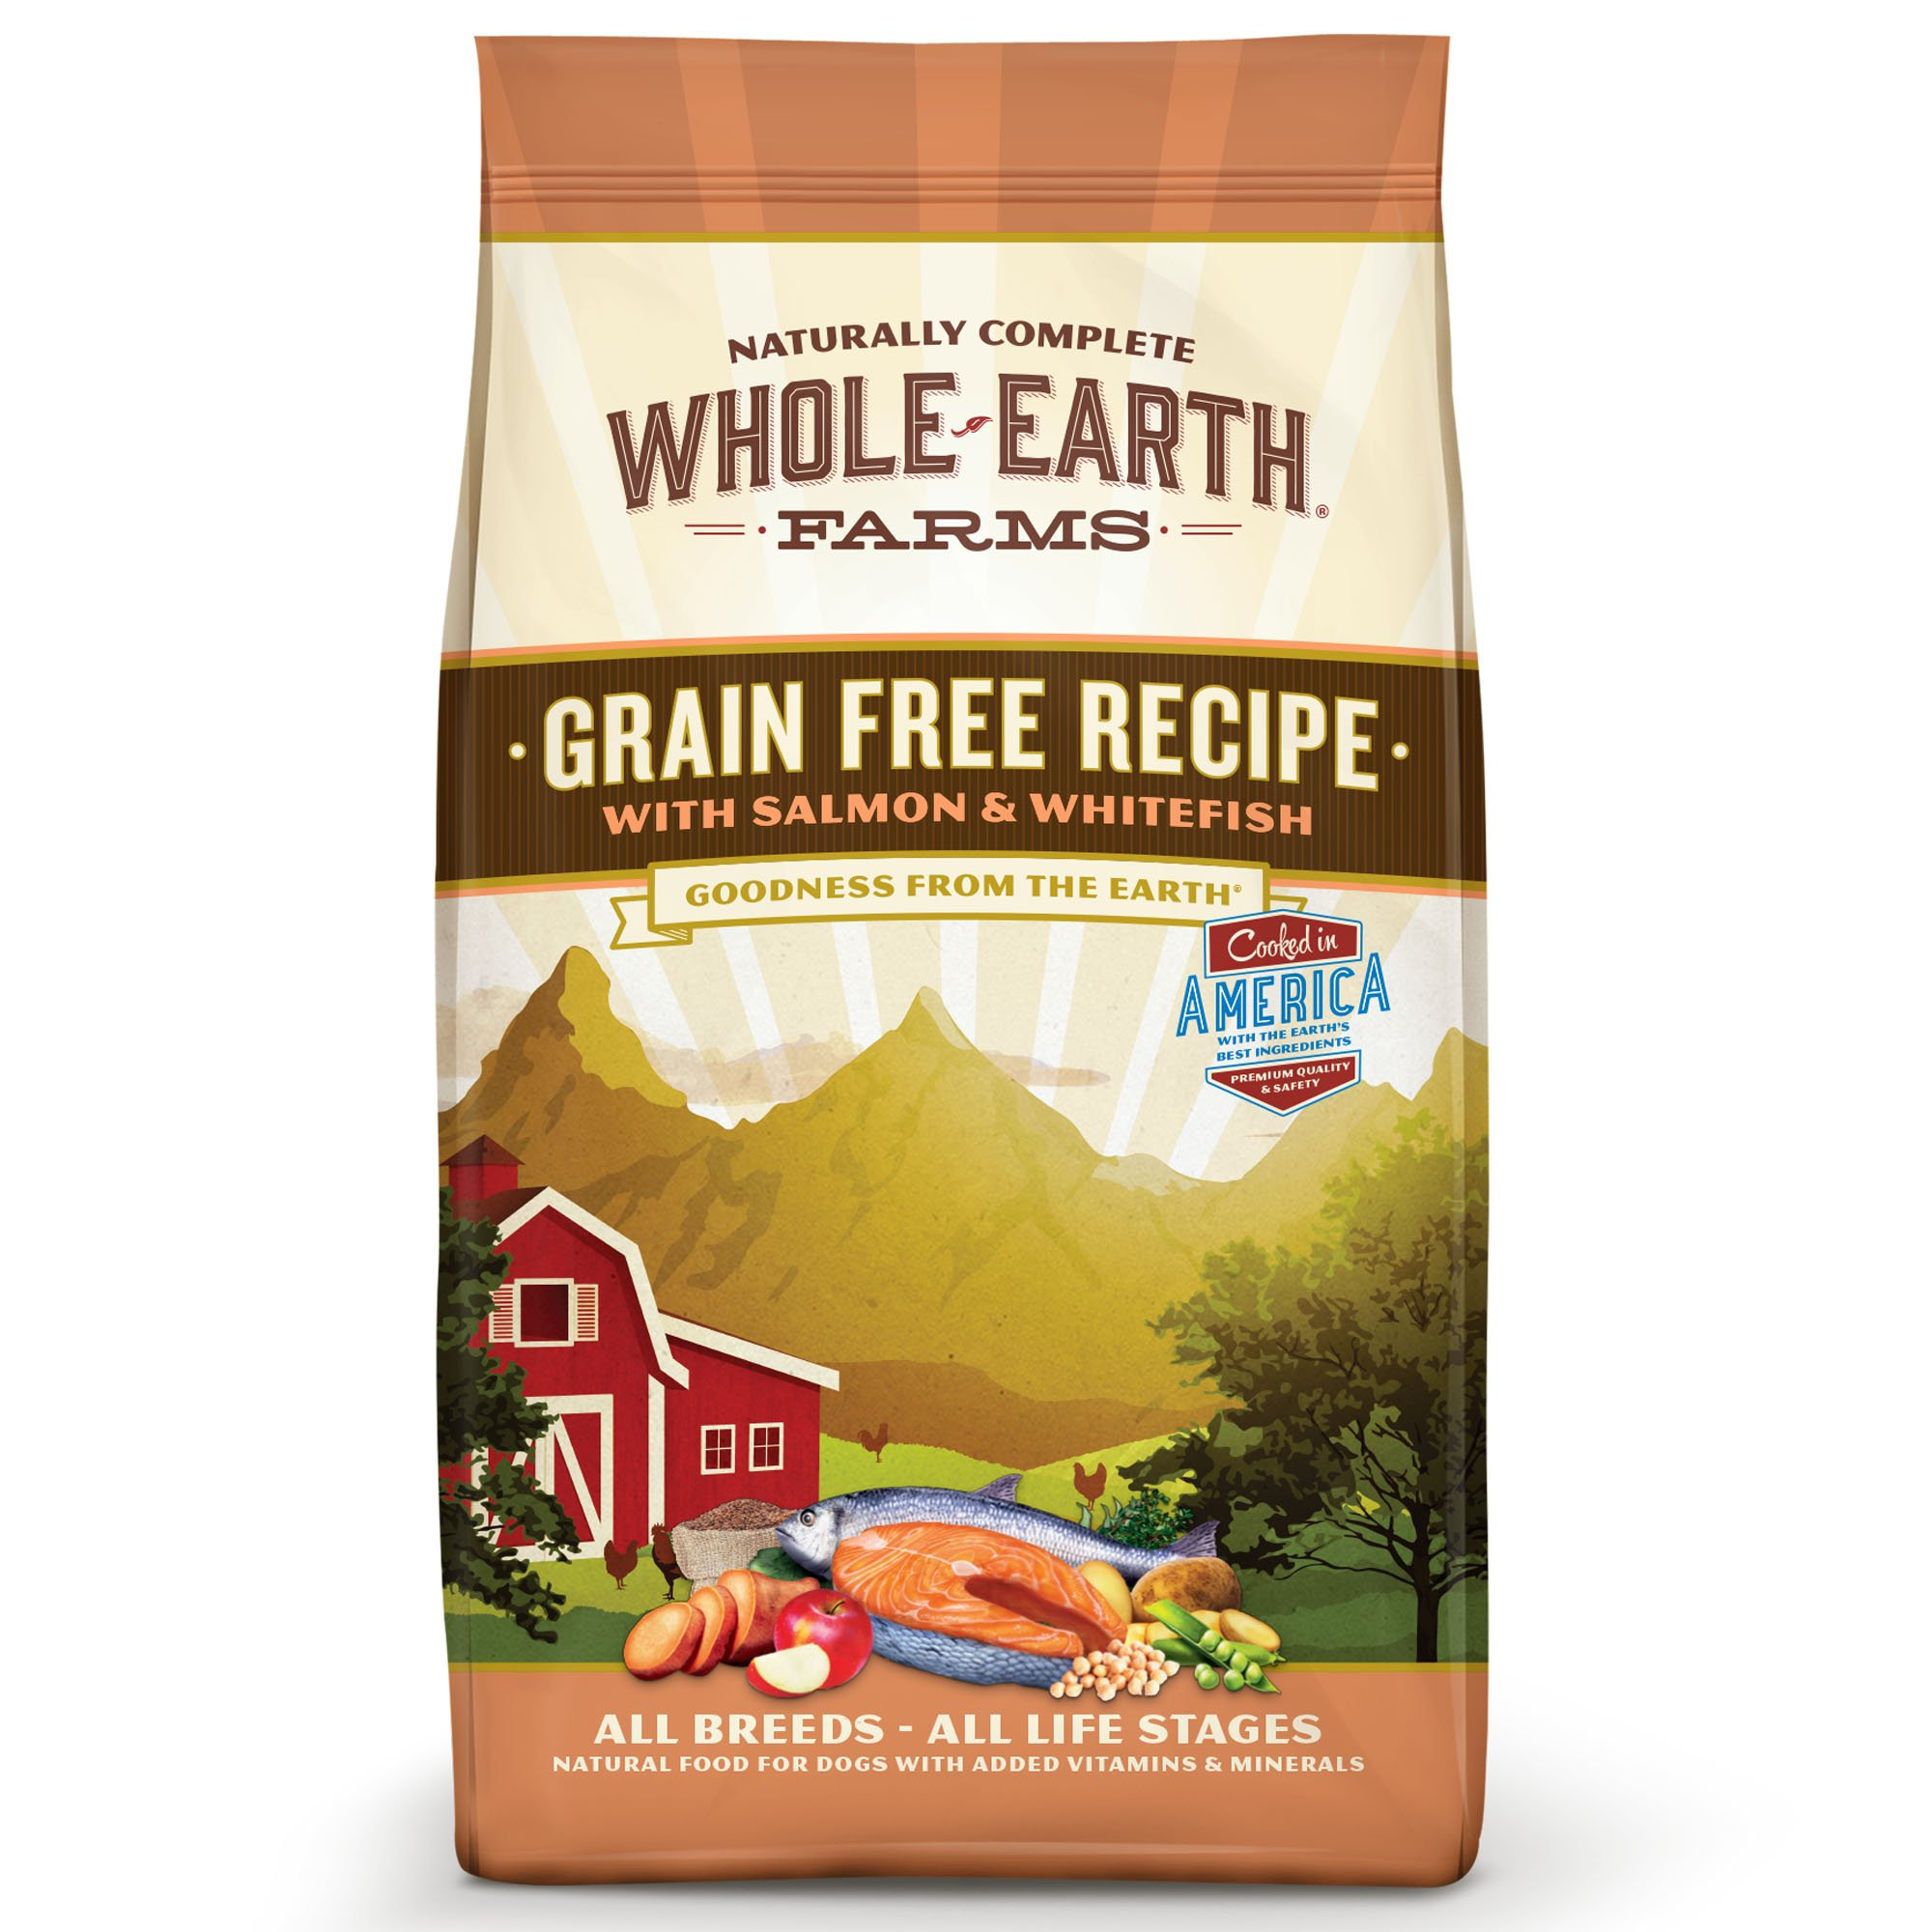 Whole Earth Farms Grain Free Recipe with Salmon & Whitefish Dry Dog Food, 12 lbs.